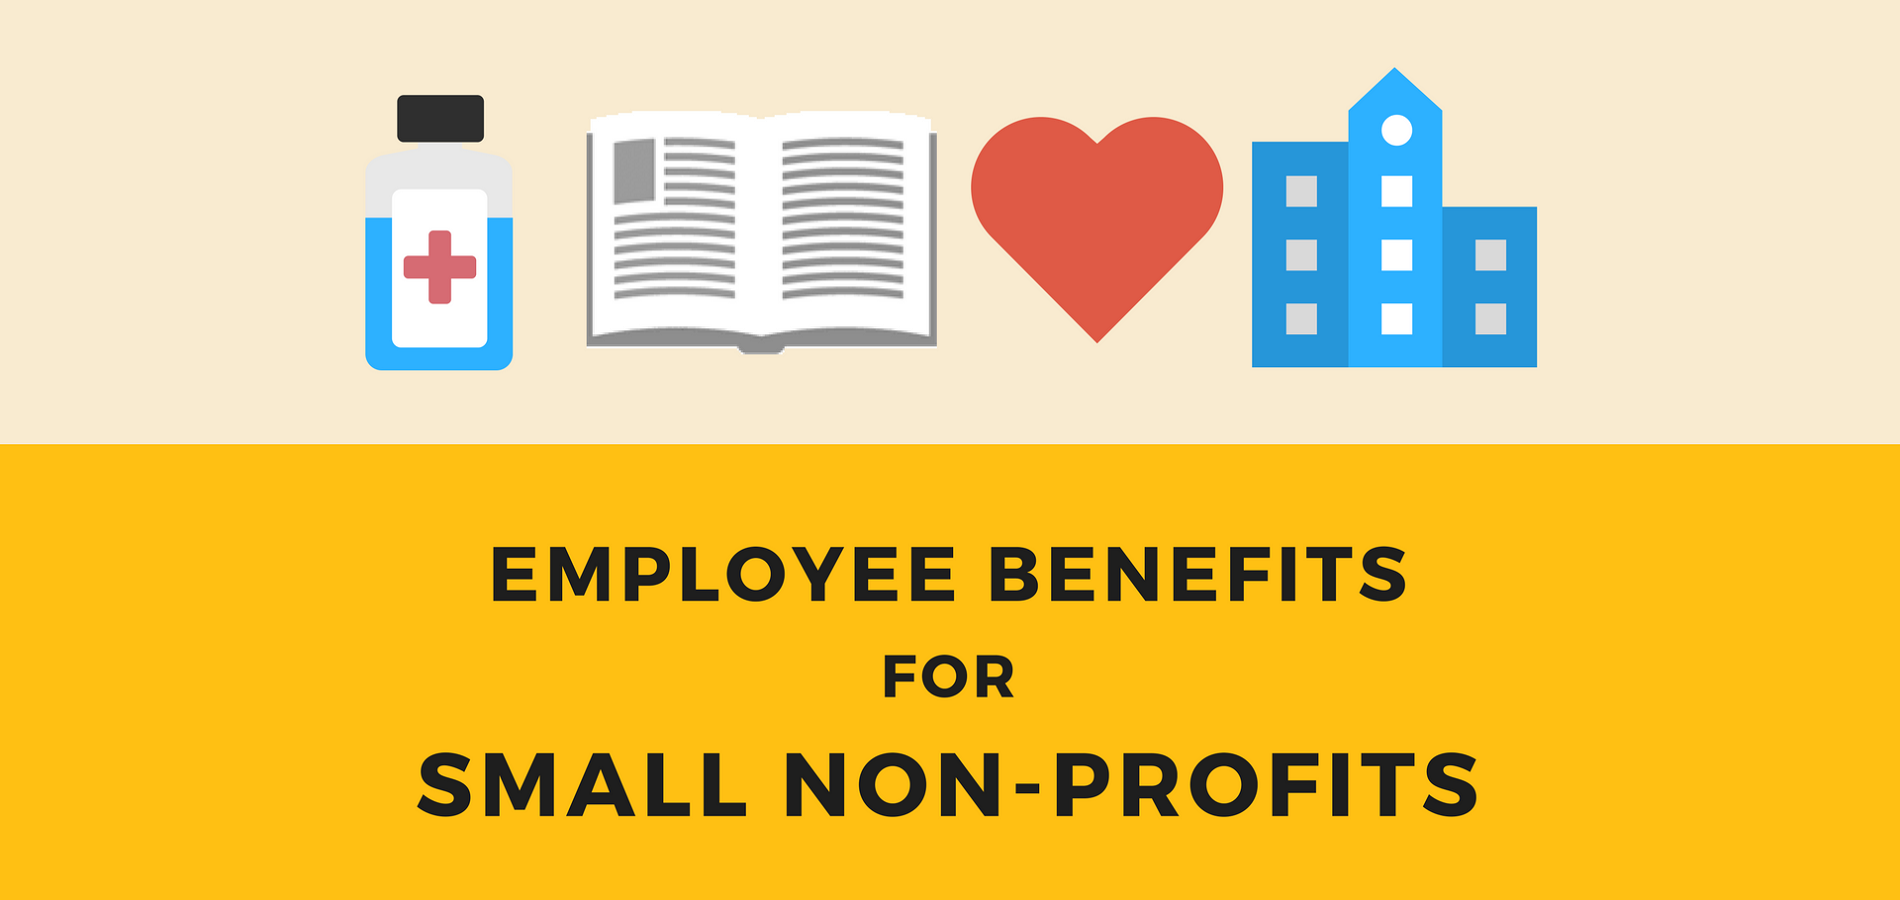 Employee benefits for small nonprofits-3